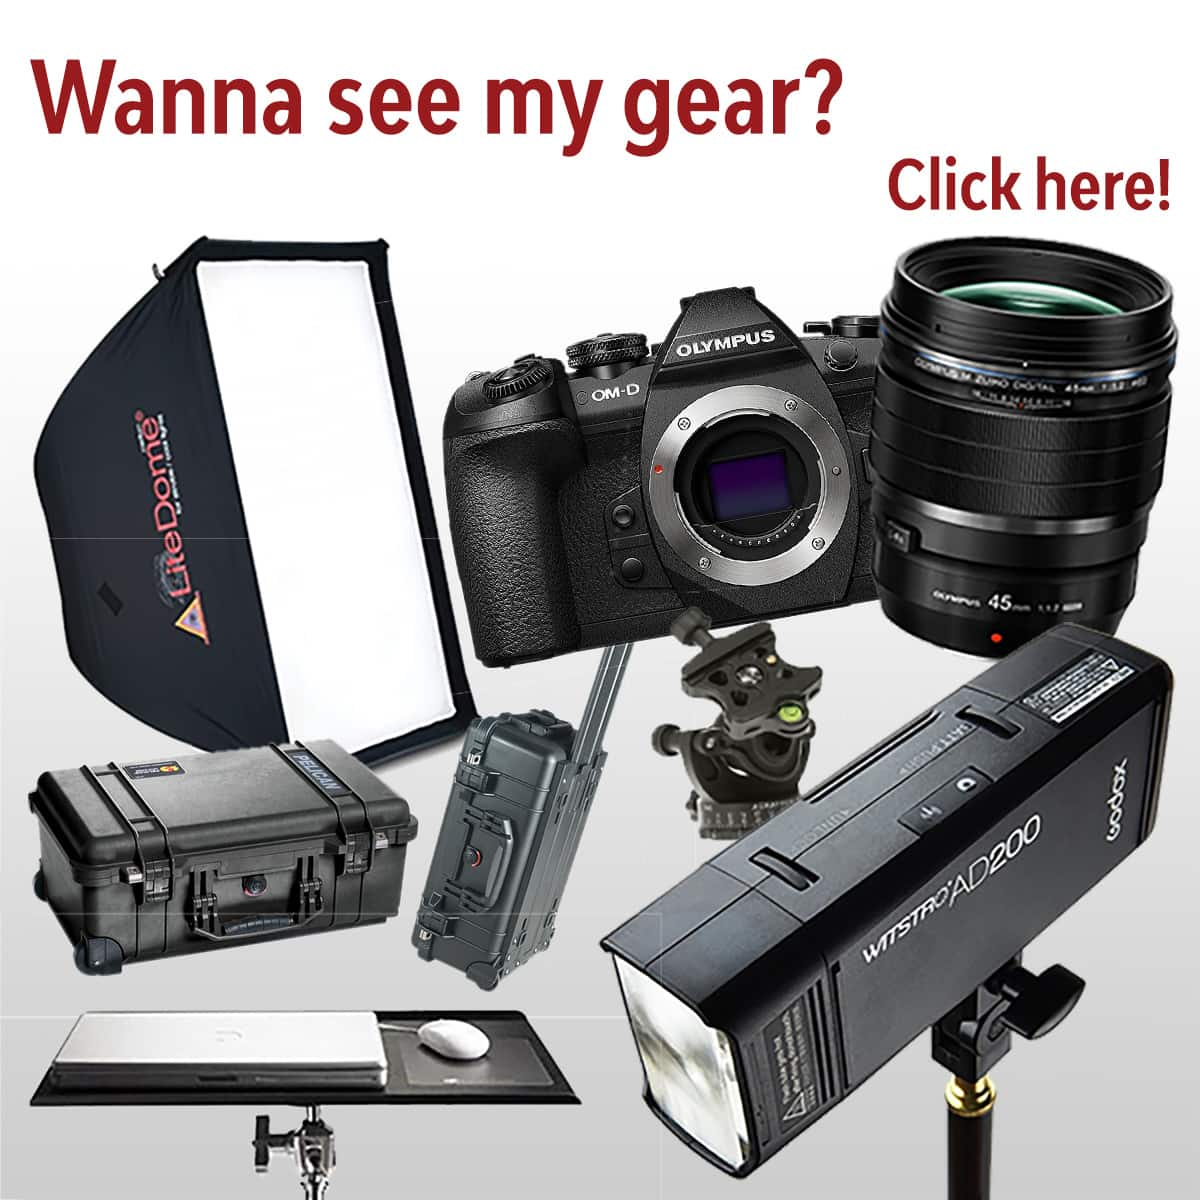 Check out my gear